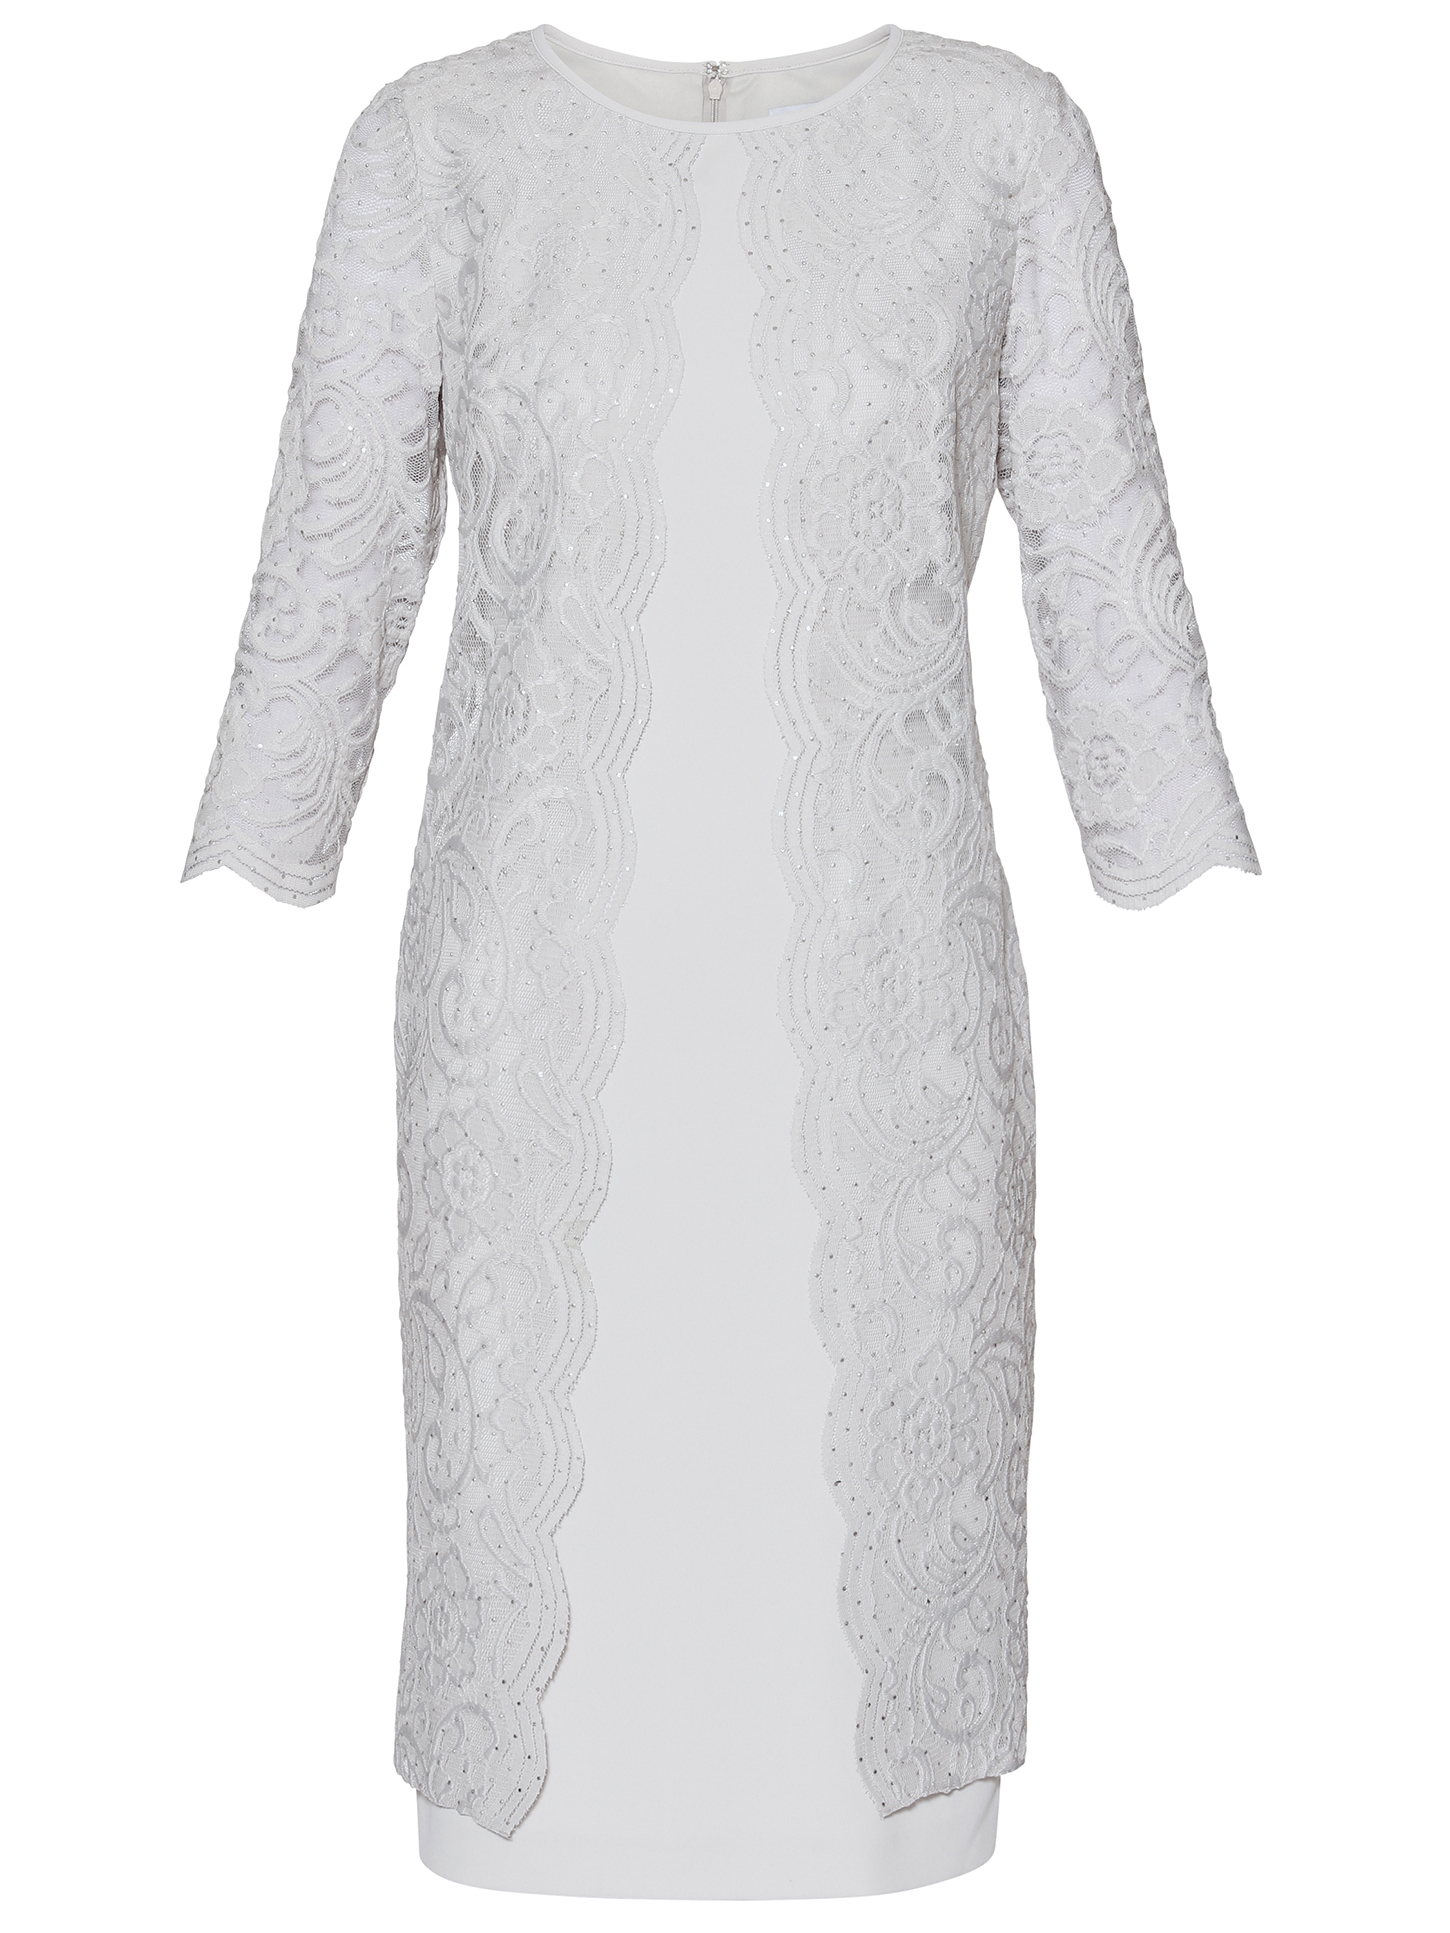 Clarabelle Crepe And Lace Dress